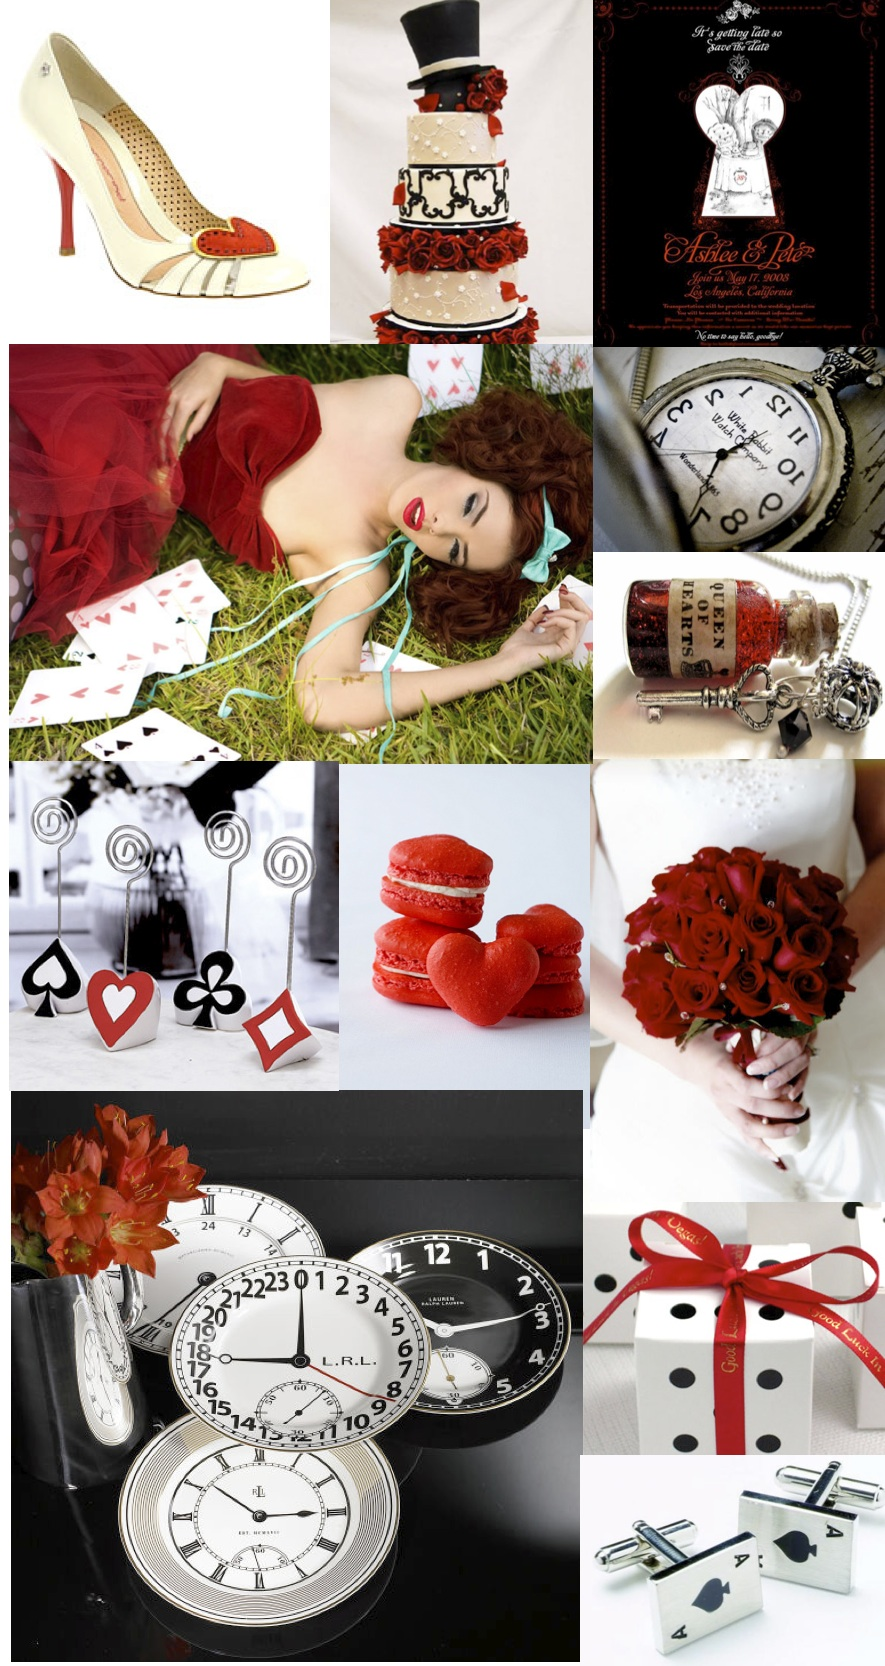 Alice In Wonderland Wedding: Queen Of Hearts Inspiration Board